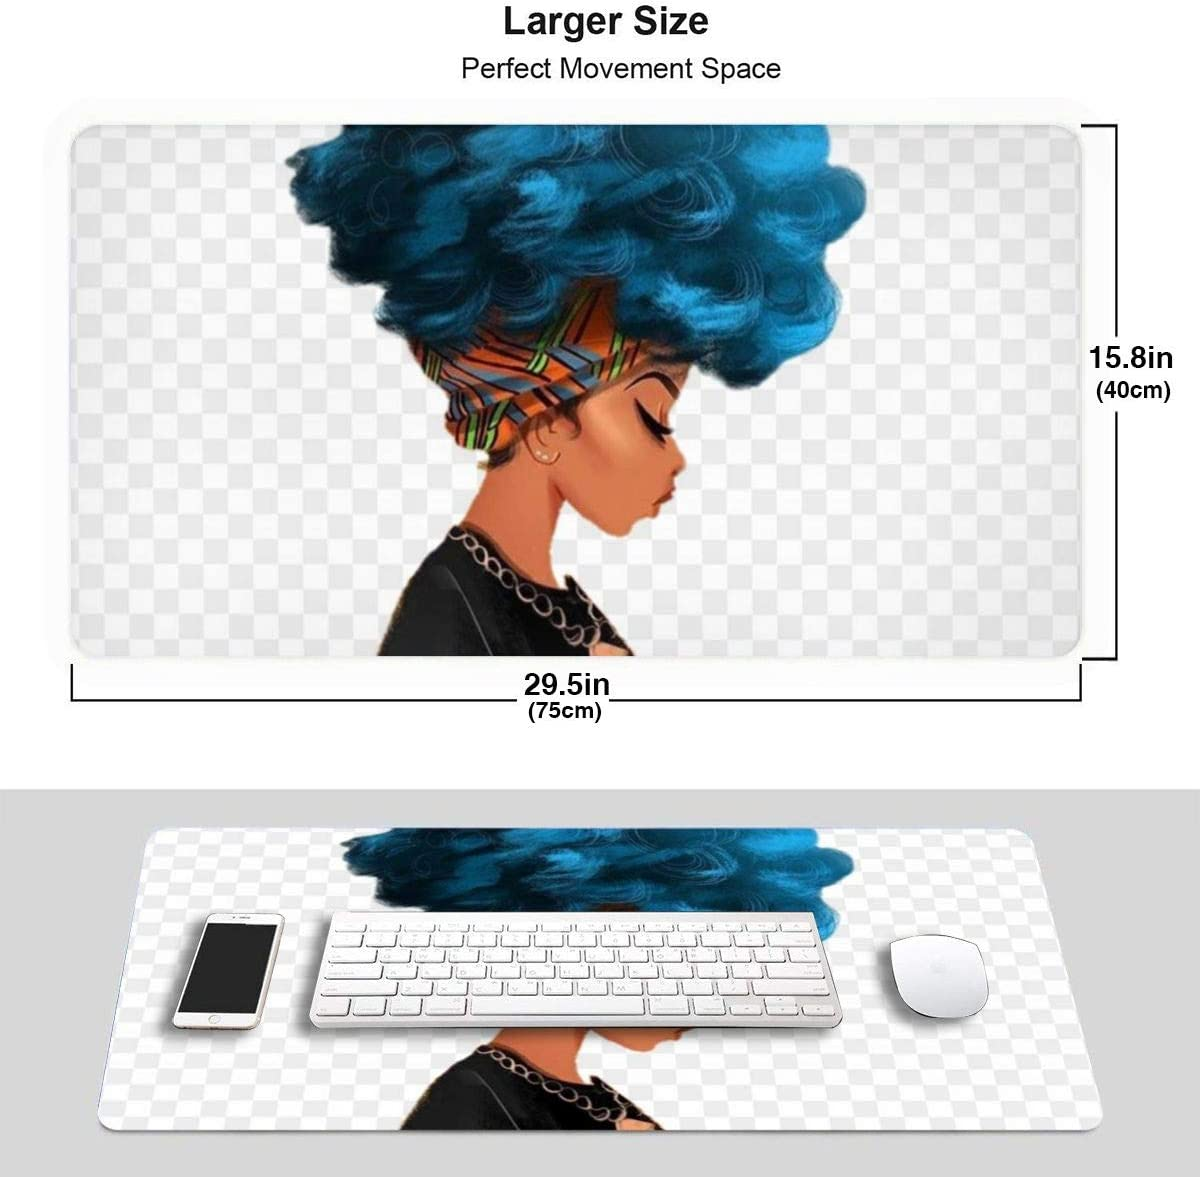 Afro African American Women Large-Scale Extended Gaming Mouse Pad with A Non-Slip Rubber Base with Stitching Edges,Computer Keyboard Pad for Office Home Games,15.829.5 in,Desk Mat